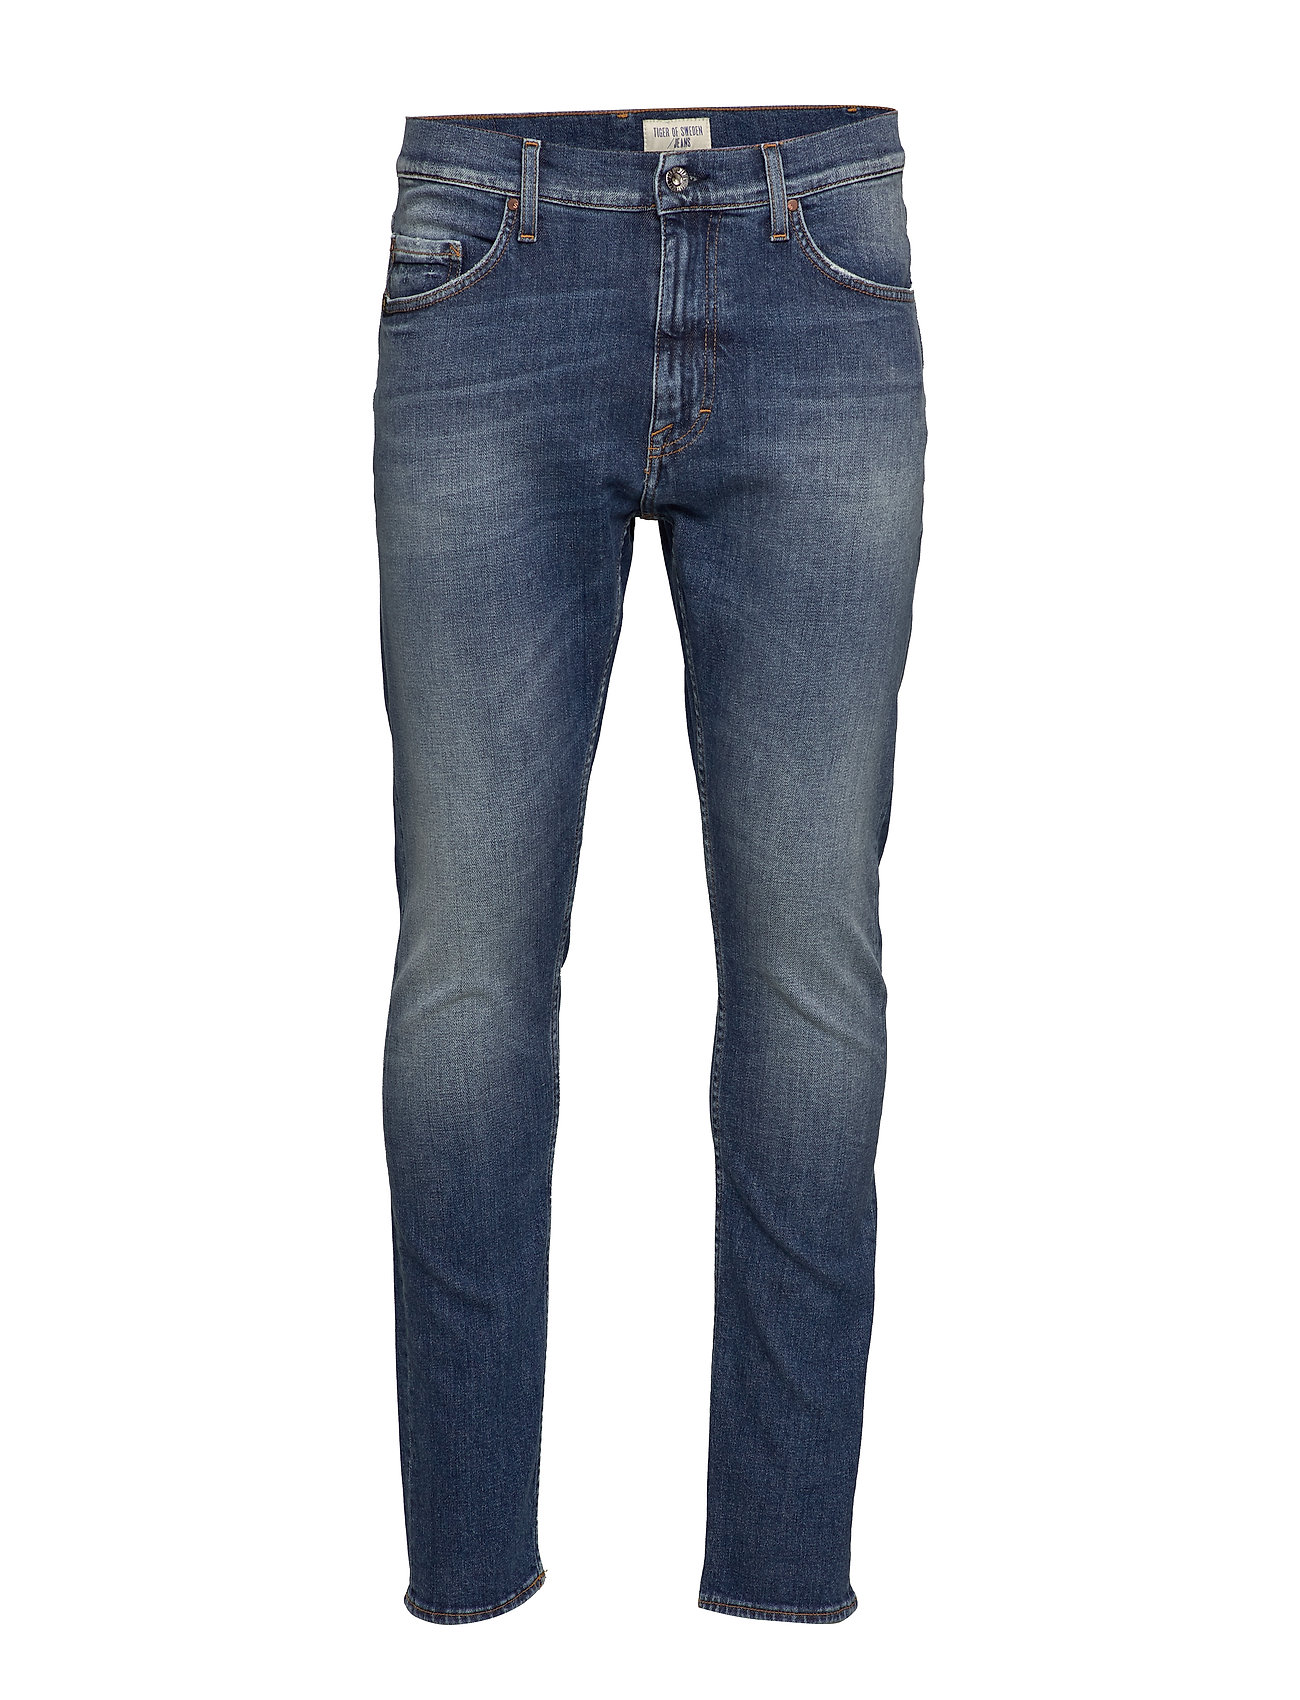 Tiger of Sweden Jeans PISTOLERO - MEDIUM BLUE